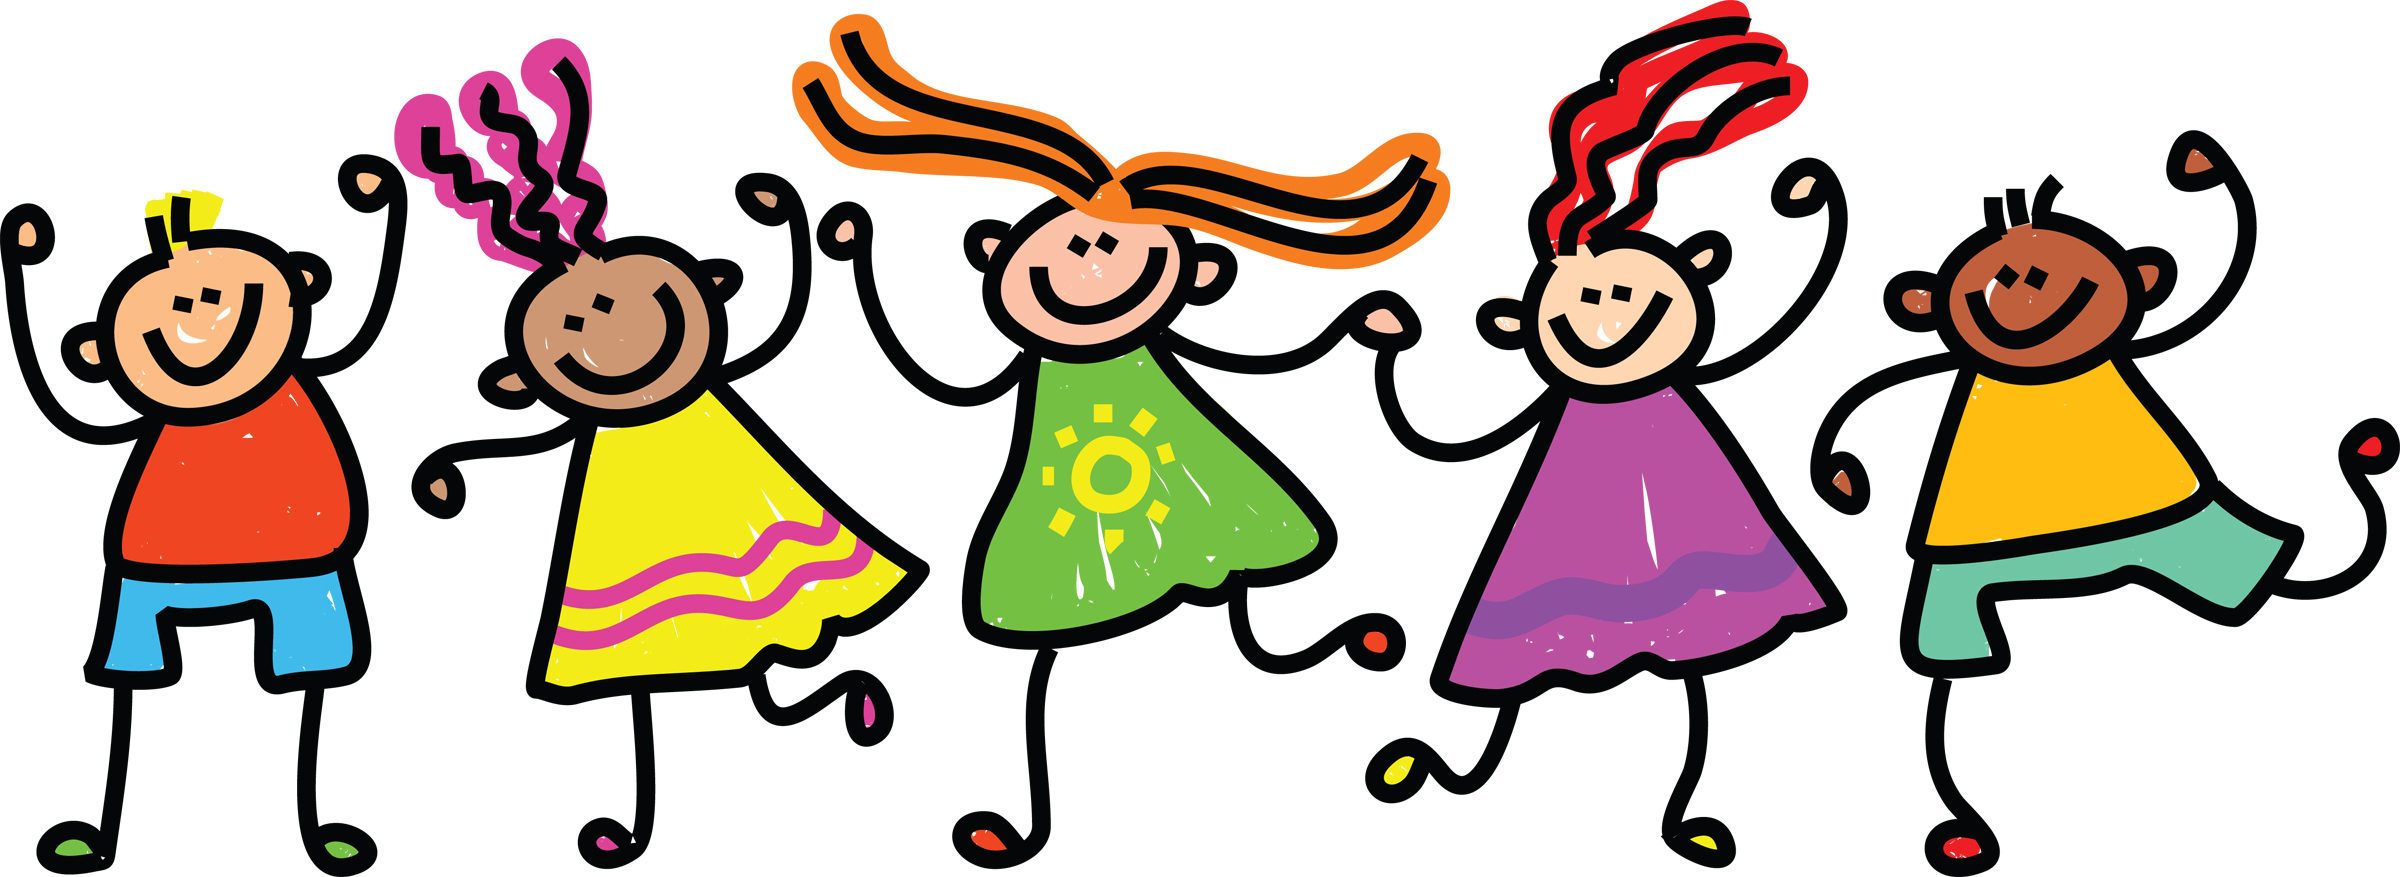 Kids danceing clipart